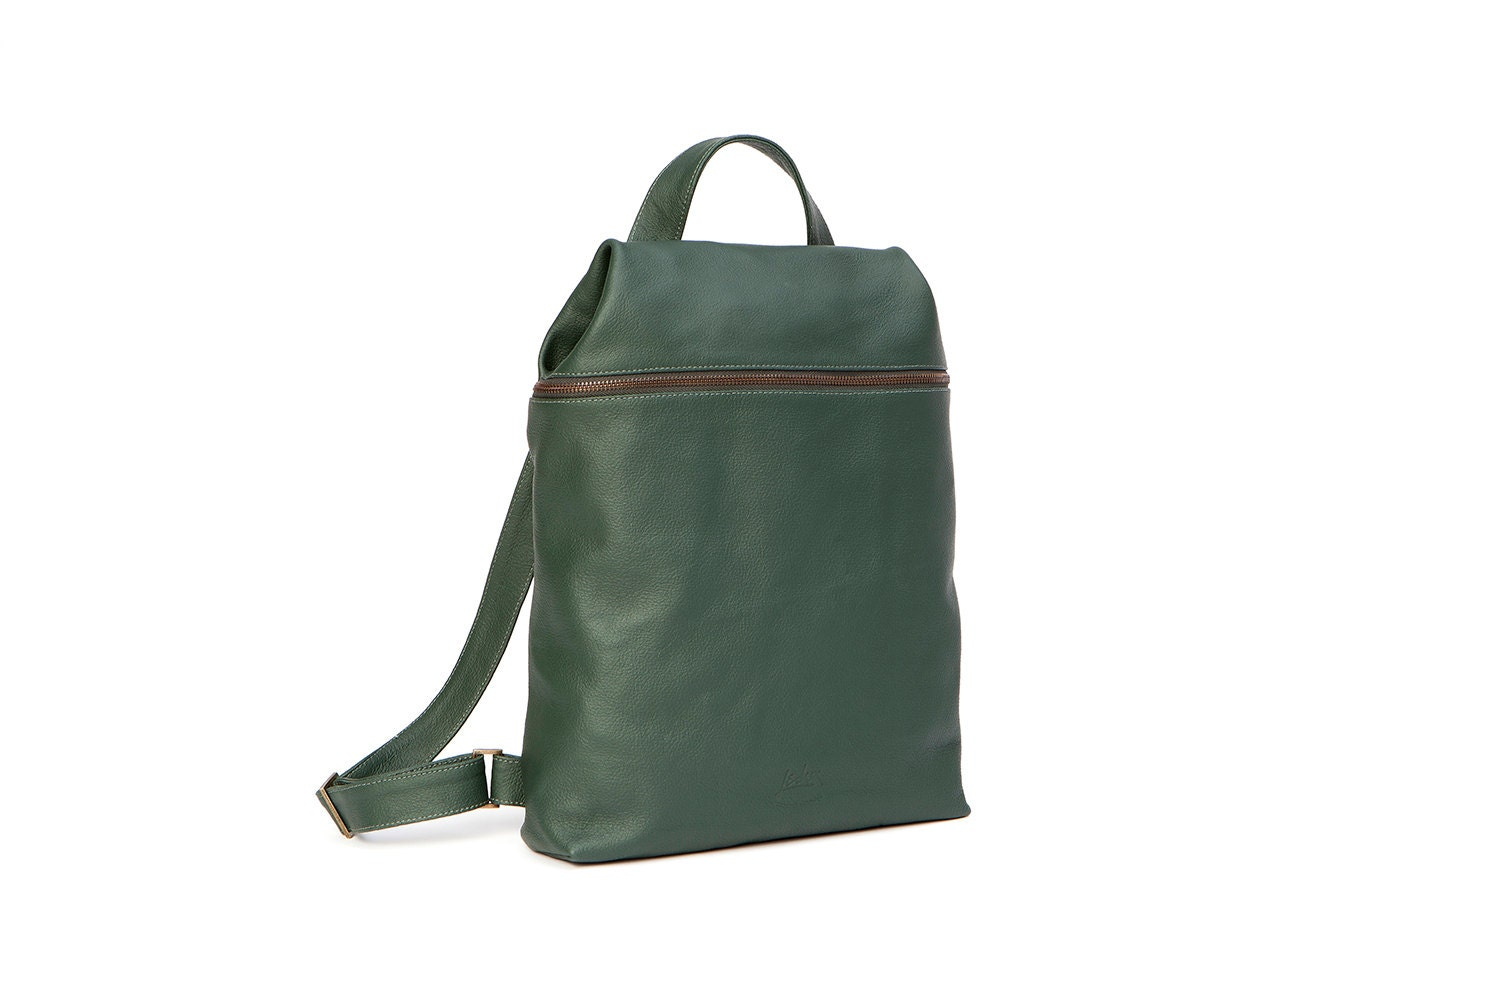 Green Leather Backpack leather laptop backpack womens